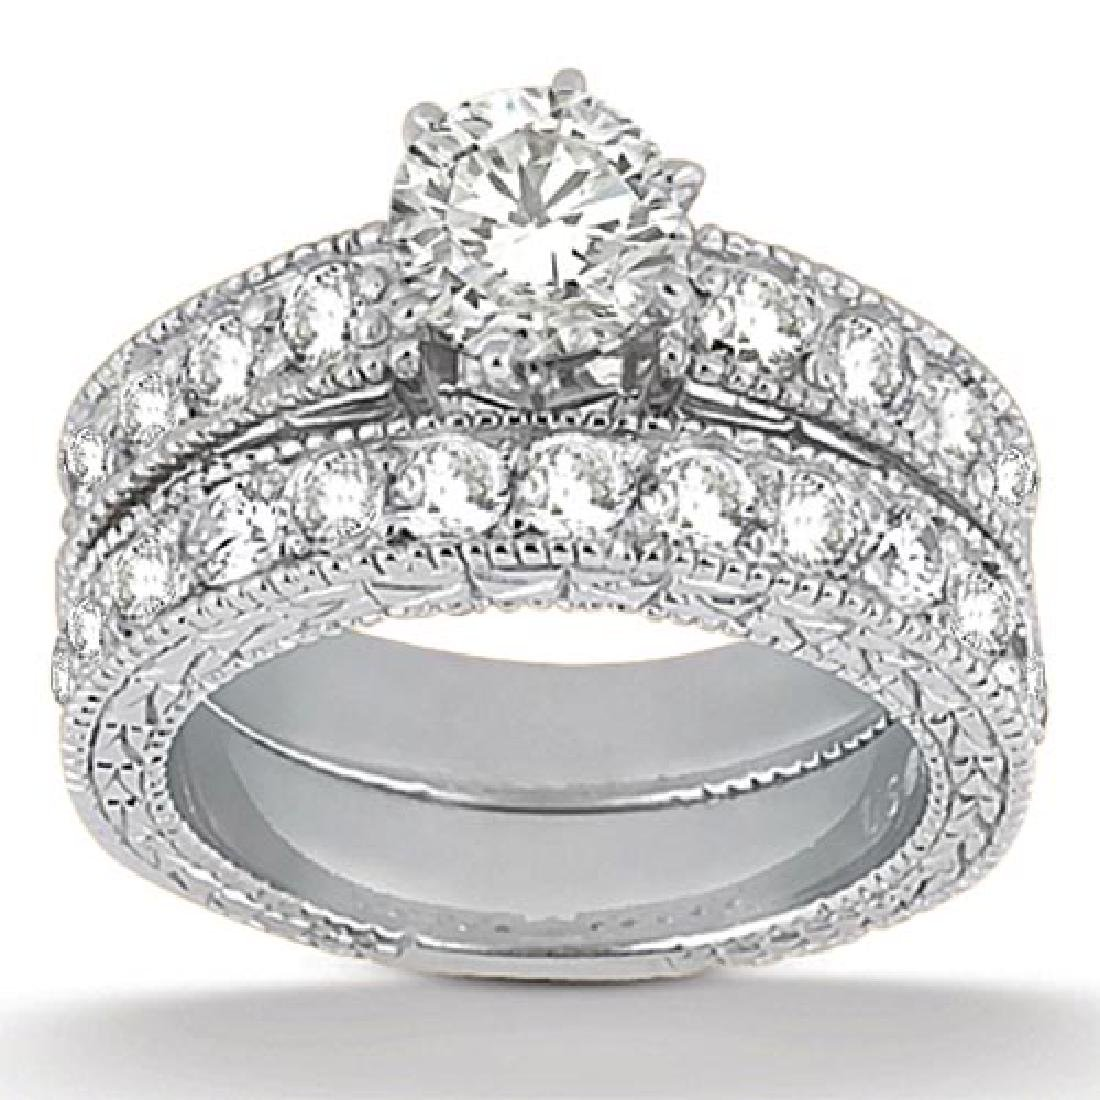 Antique Diamond Engagement Ring and Band 18k White Gold